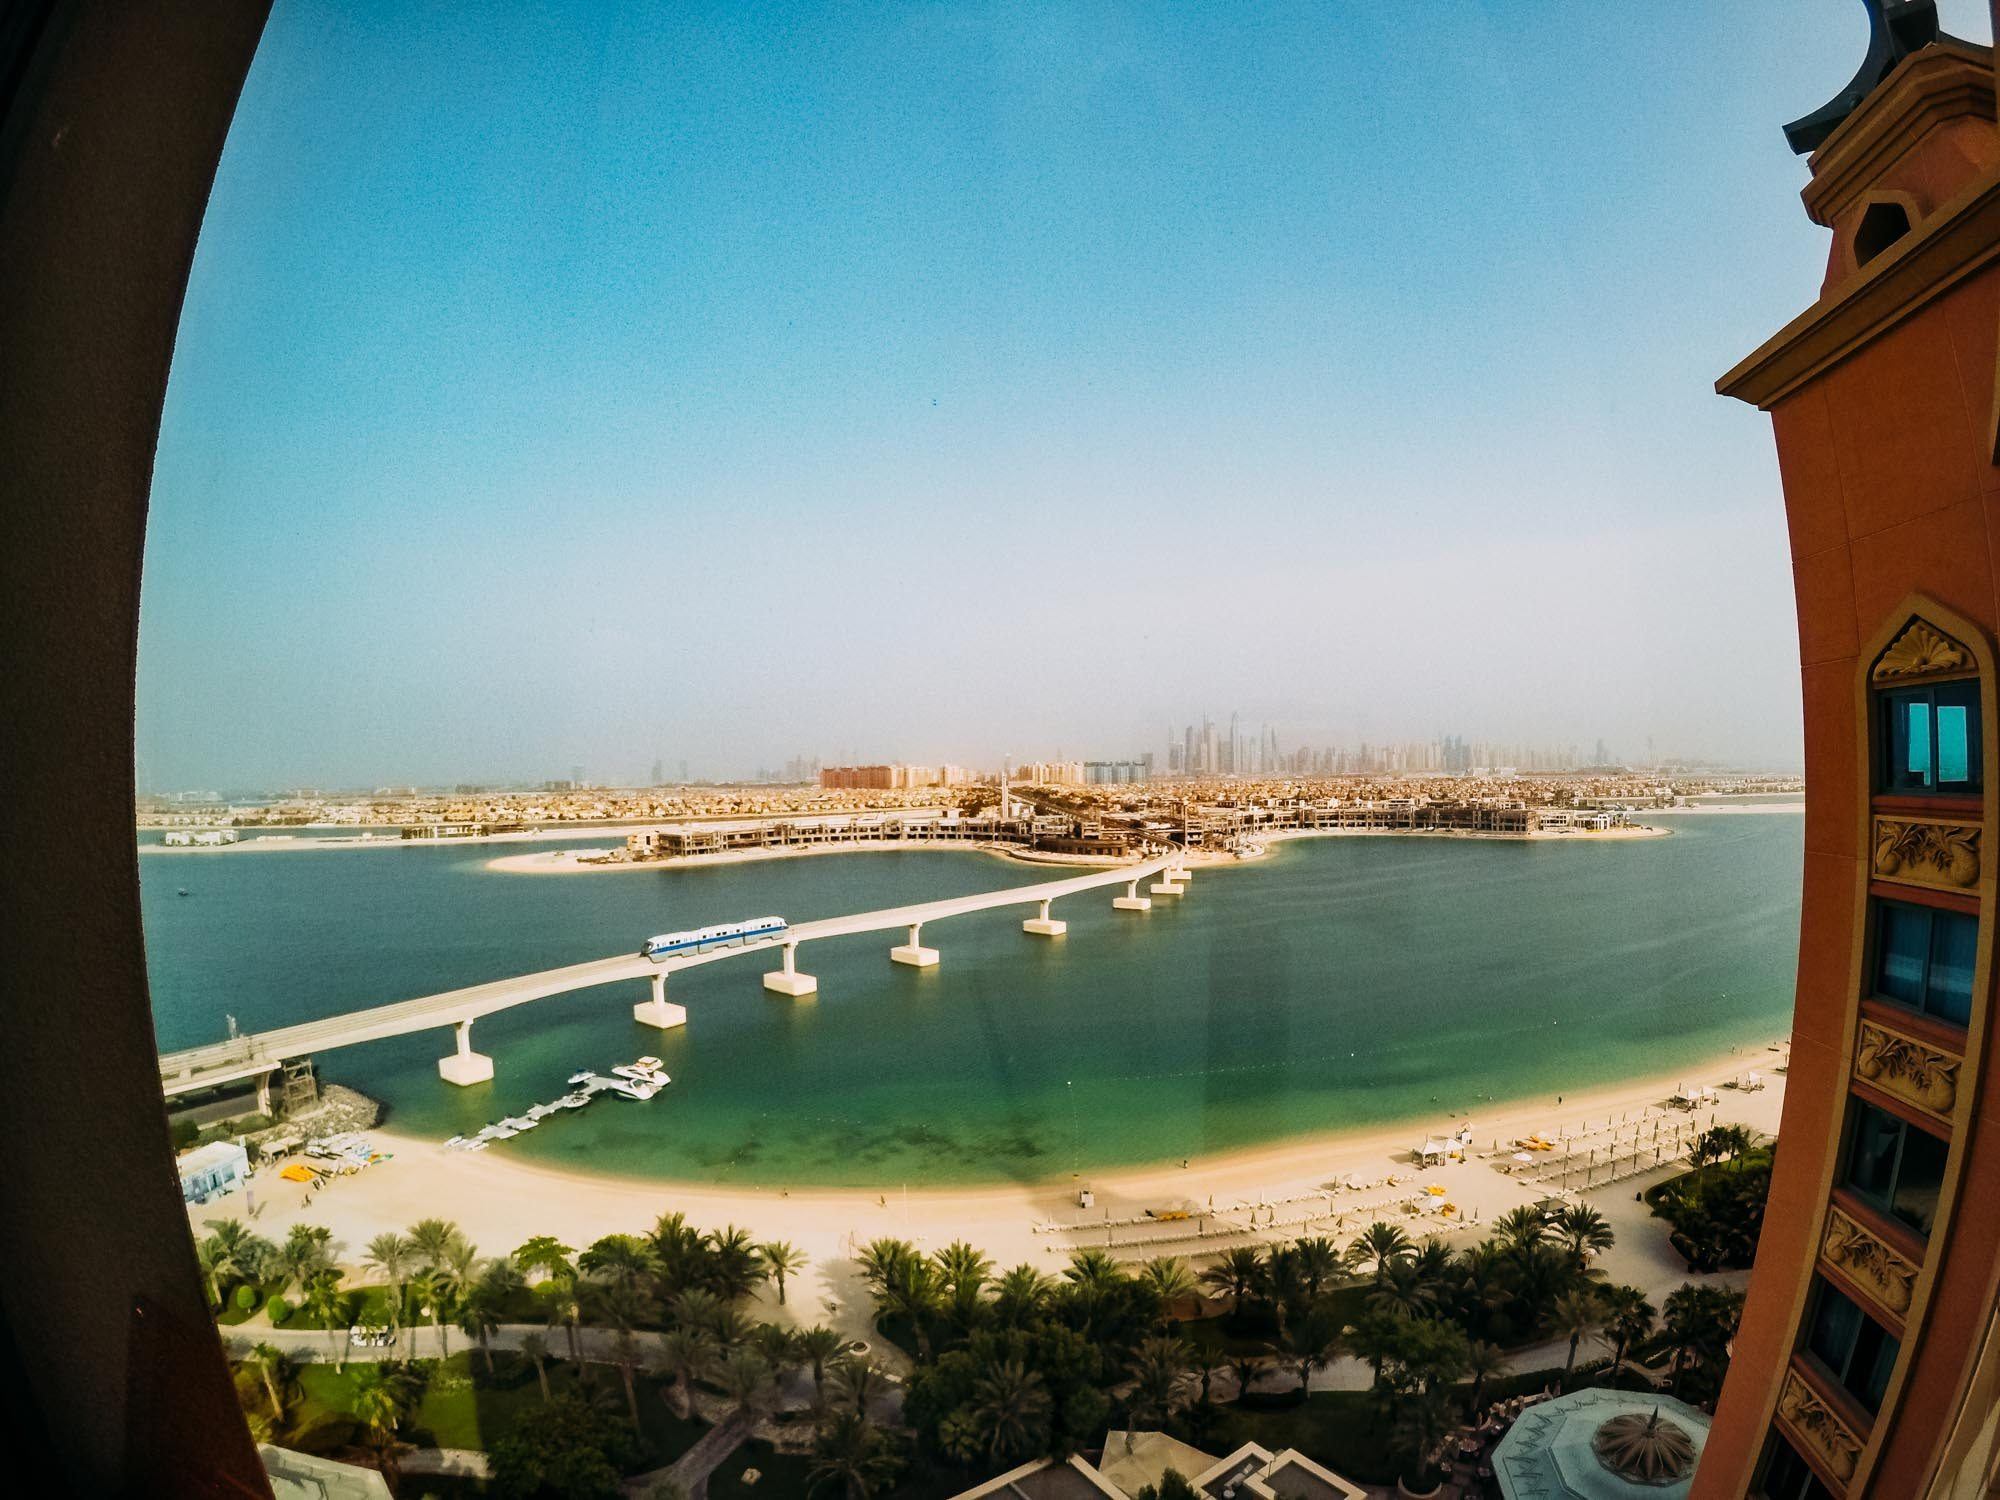 Naina.co, #EmiratesHolidays, #REDHUxEmirates, #EyesForDubai, Atlantis The Palm, Atlantis Resort, Atlantis Hotel, UAE, Dubai, Travel Photographer, Travel Blogger, #EyesForLuxury, #EyesForLifestyle, Experience Collector, Timelapse Photographer, Timelapse Video, Room With a View, Suite, 13th Floor, Arabian Sea, Middle East, DXB, Monorail, Beach, Holiday, Summers, Cityscape, Naina Redhu, Professional Photographer